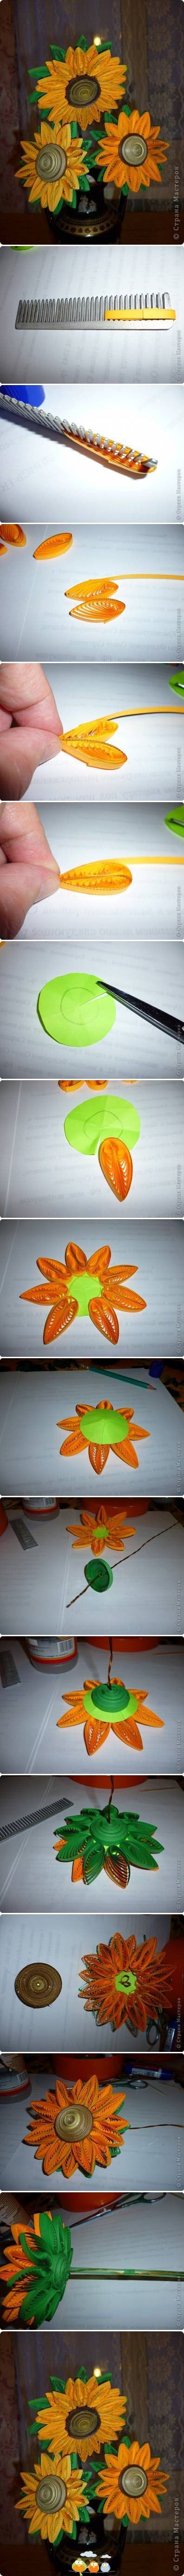 Sunflower quilling